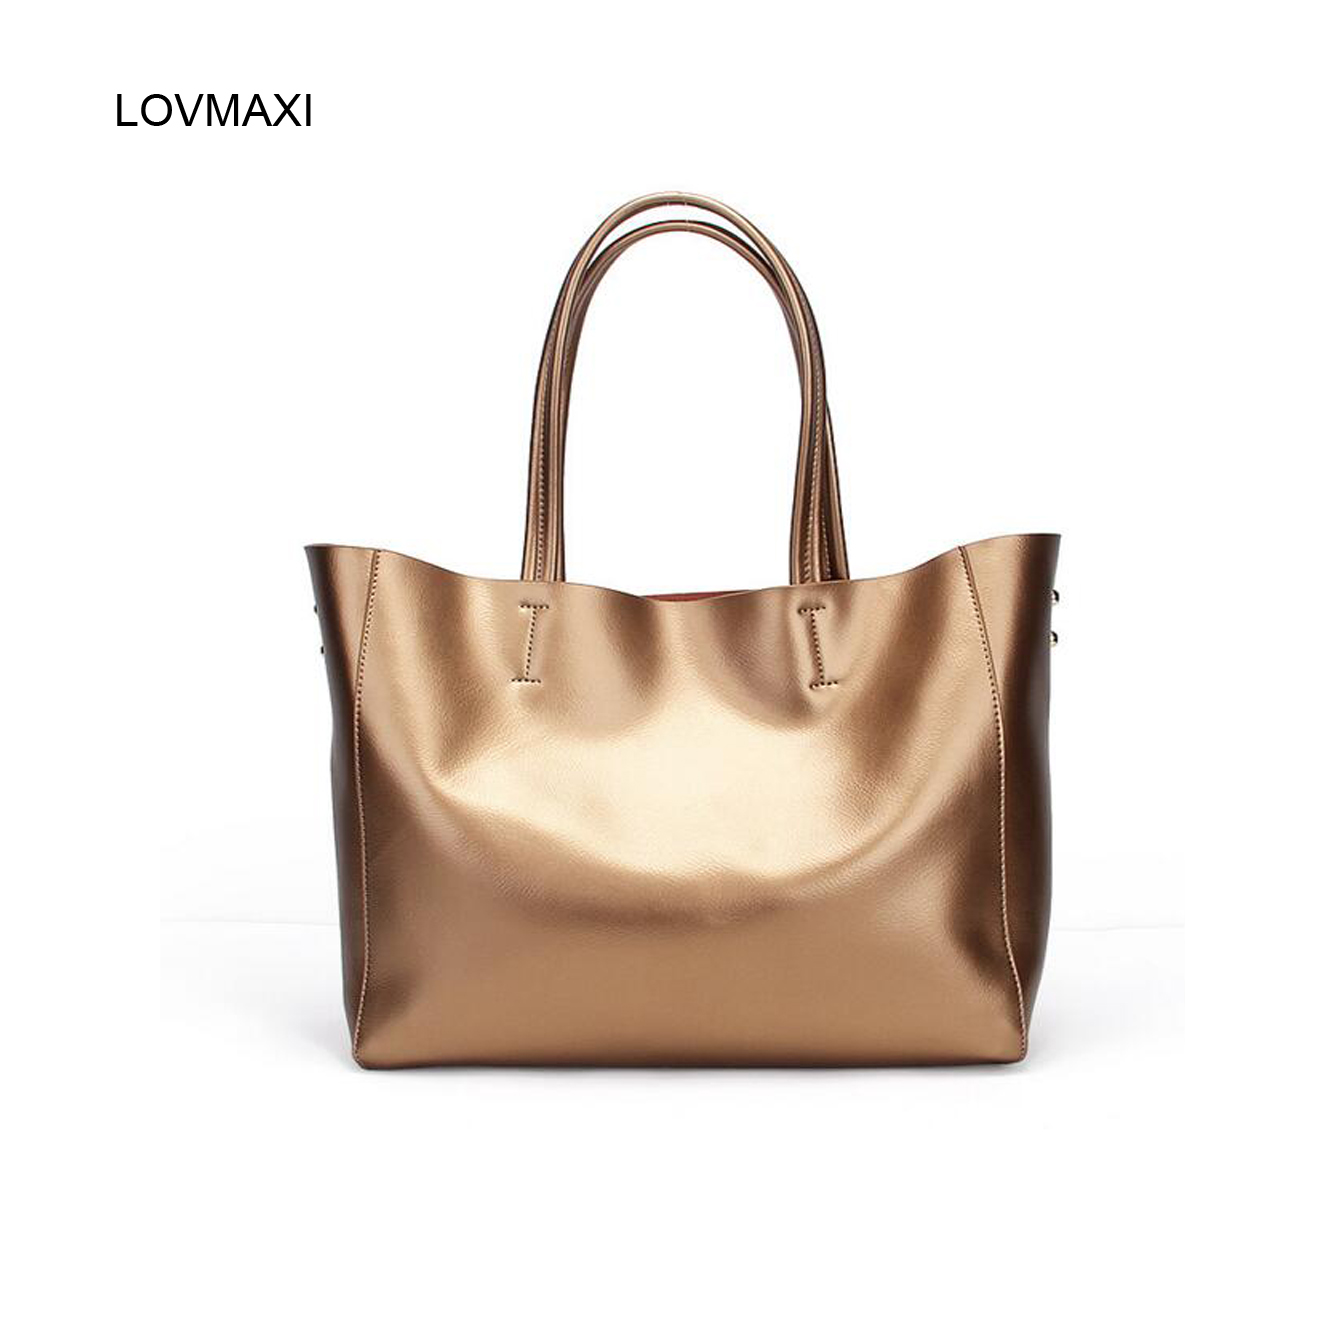 2017 Fashion Natural Leather Tote Bags Causal Handbags Luxury Handbags Women Bags Designer Bronze Metal Color